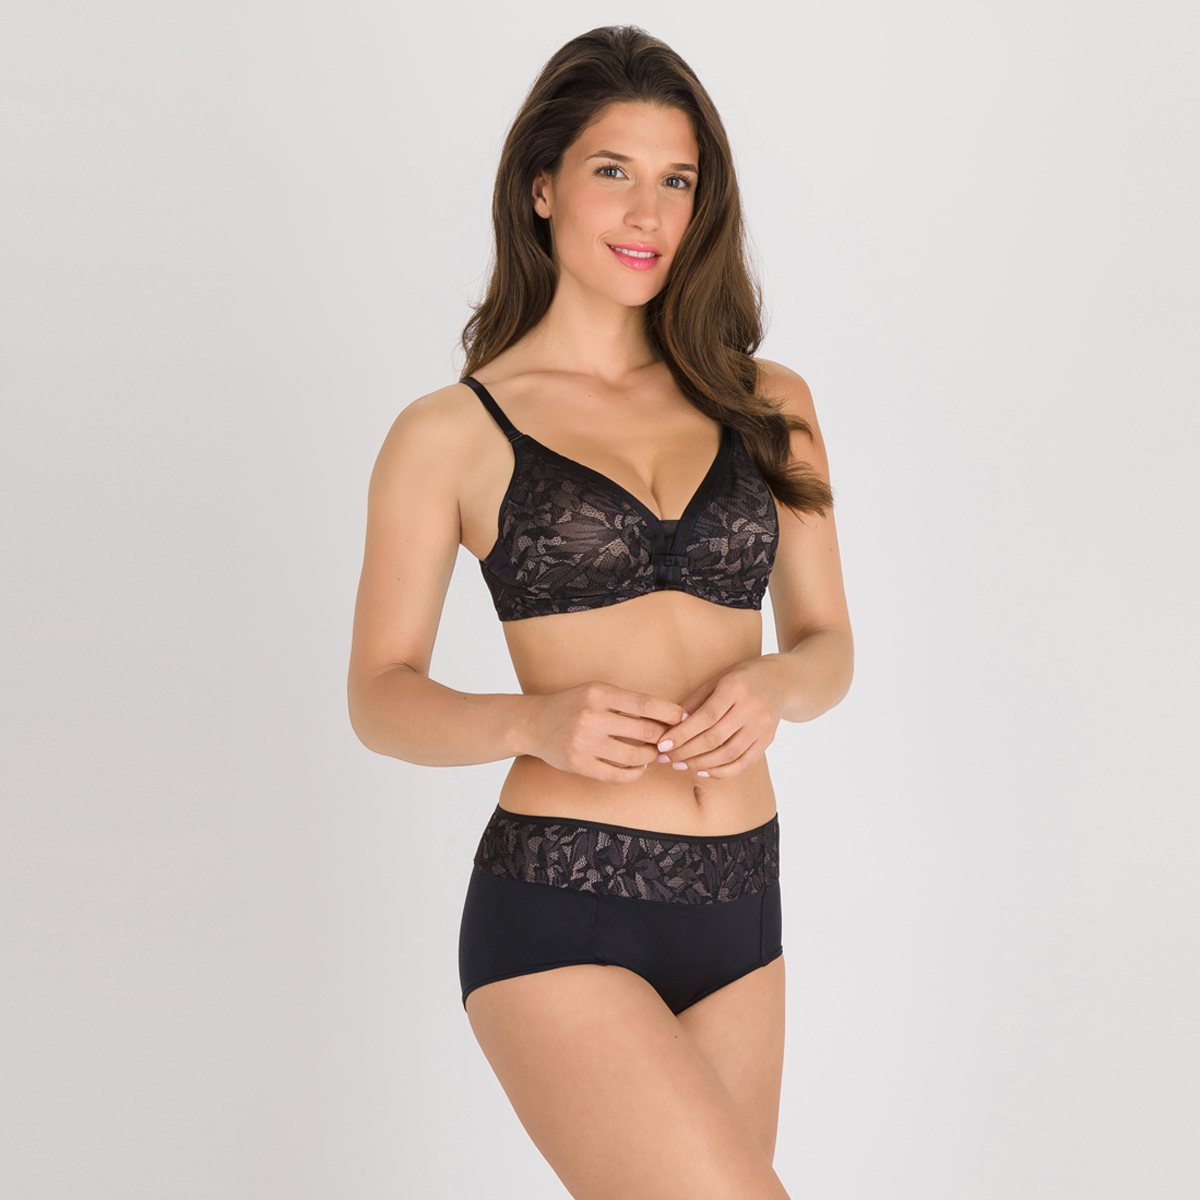 Reggiseno con ferretto nero e grigio - Ideal Beauty Lace, , PLAYTEX